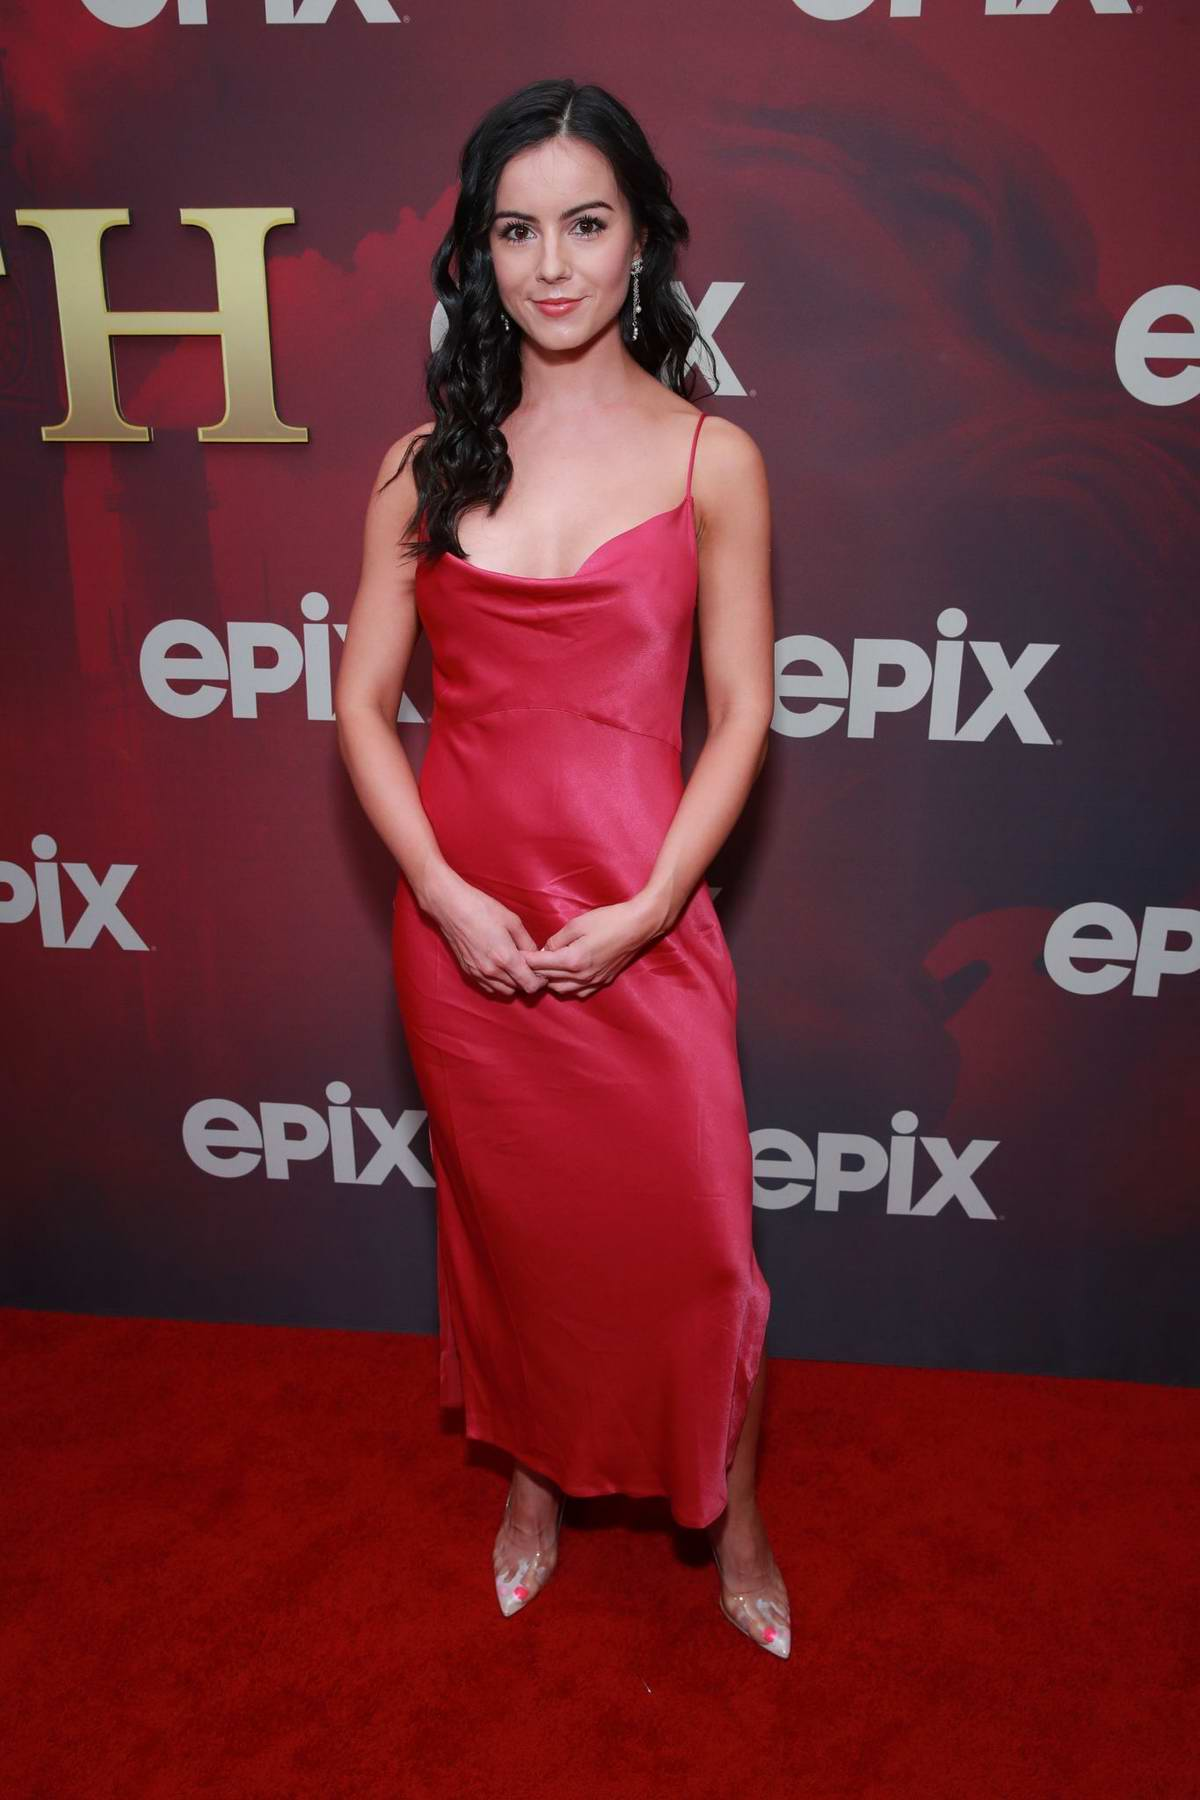 Sarah Elizabeth Withers attends the Premiere of Epix's 'Pennyworth' in Los Angeles